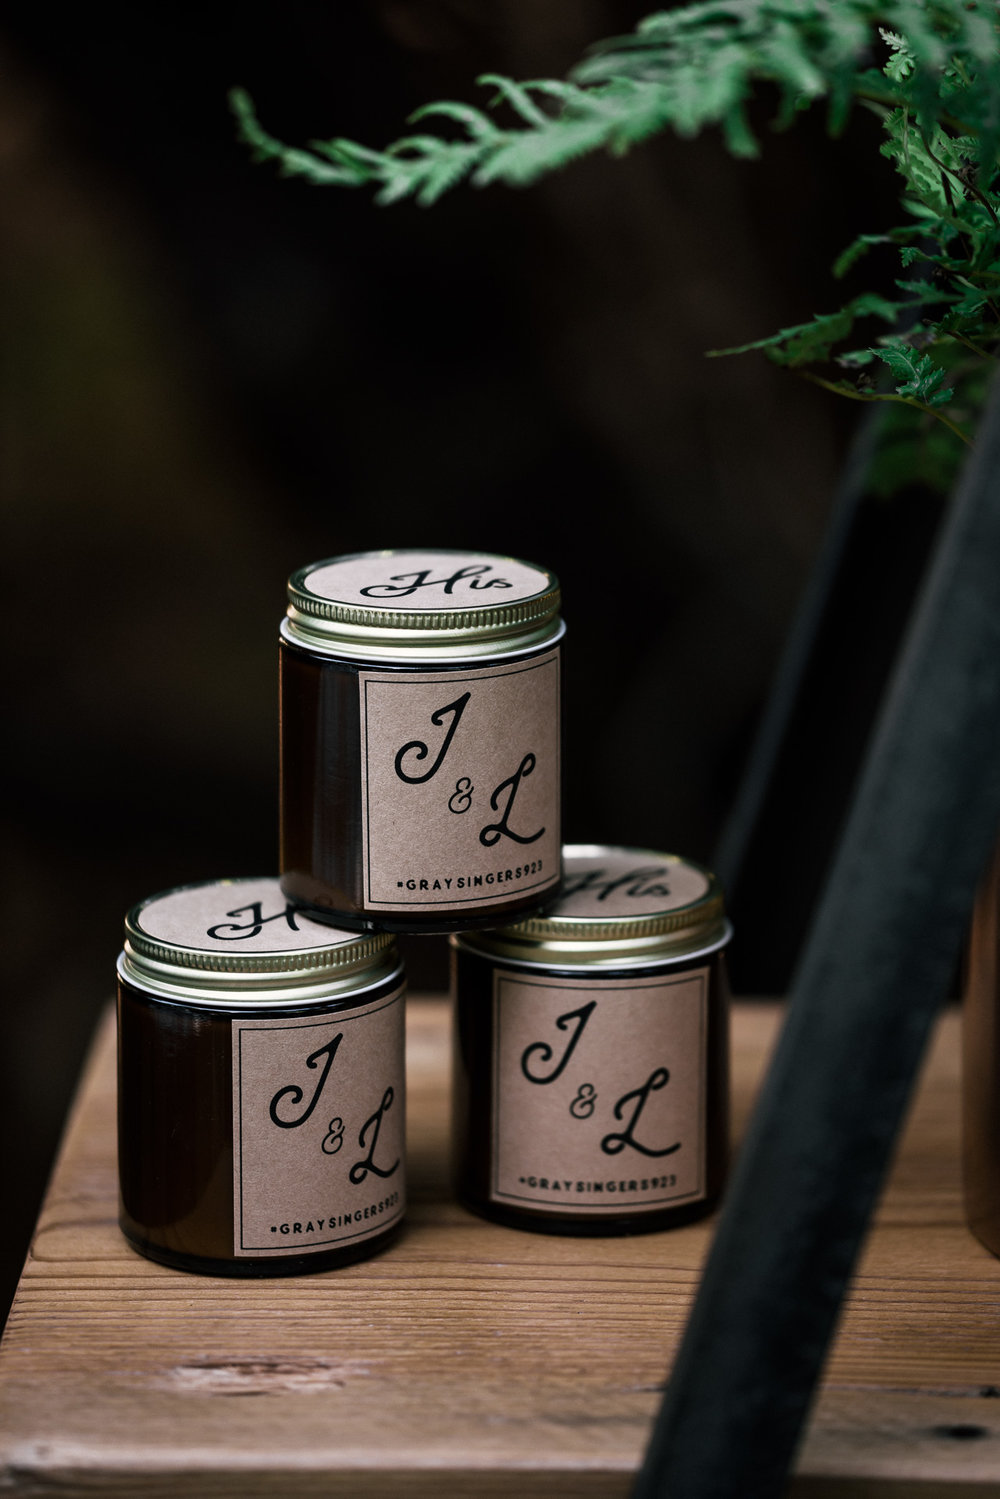 him and her's  handmade candle wedding favors shot by wedding photographer at the charming St. George Hotel in Volcano California